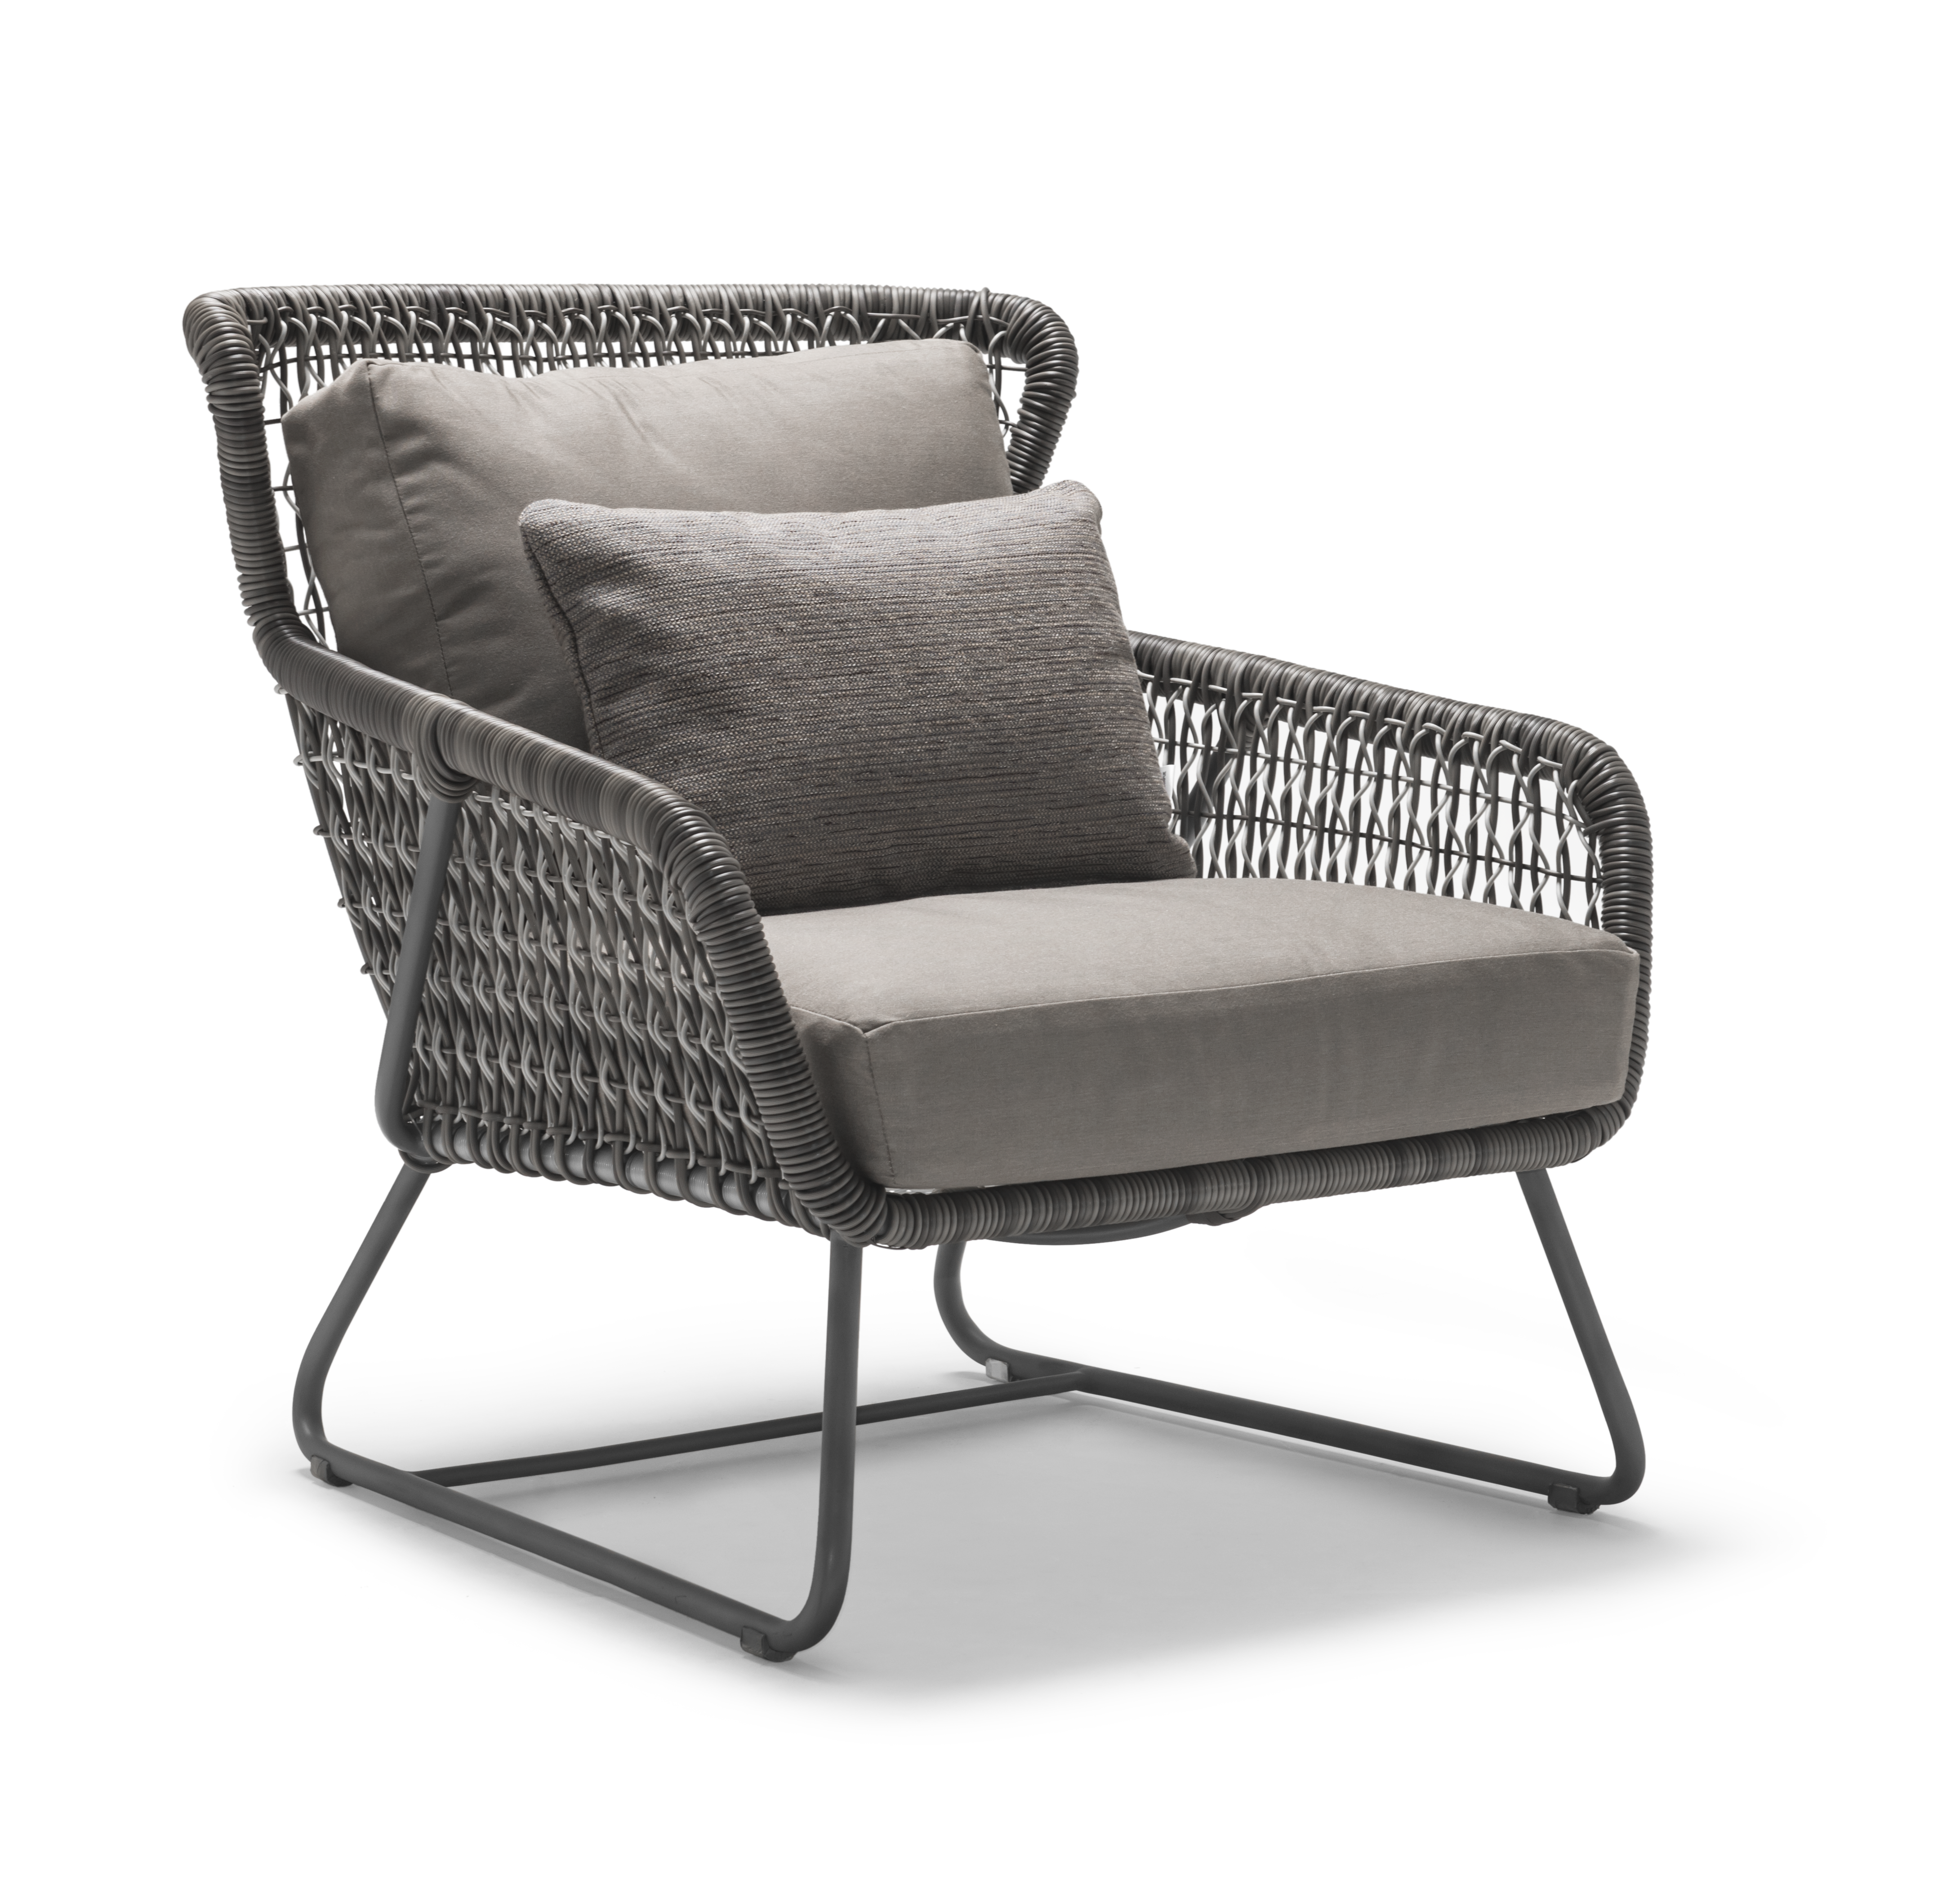 Isabella - Easy Armchair, lowback